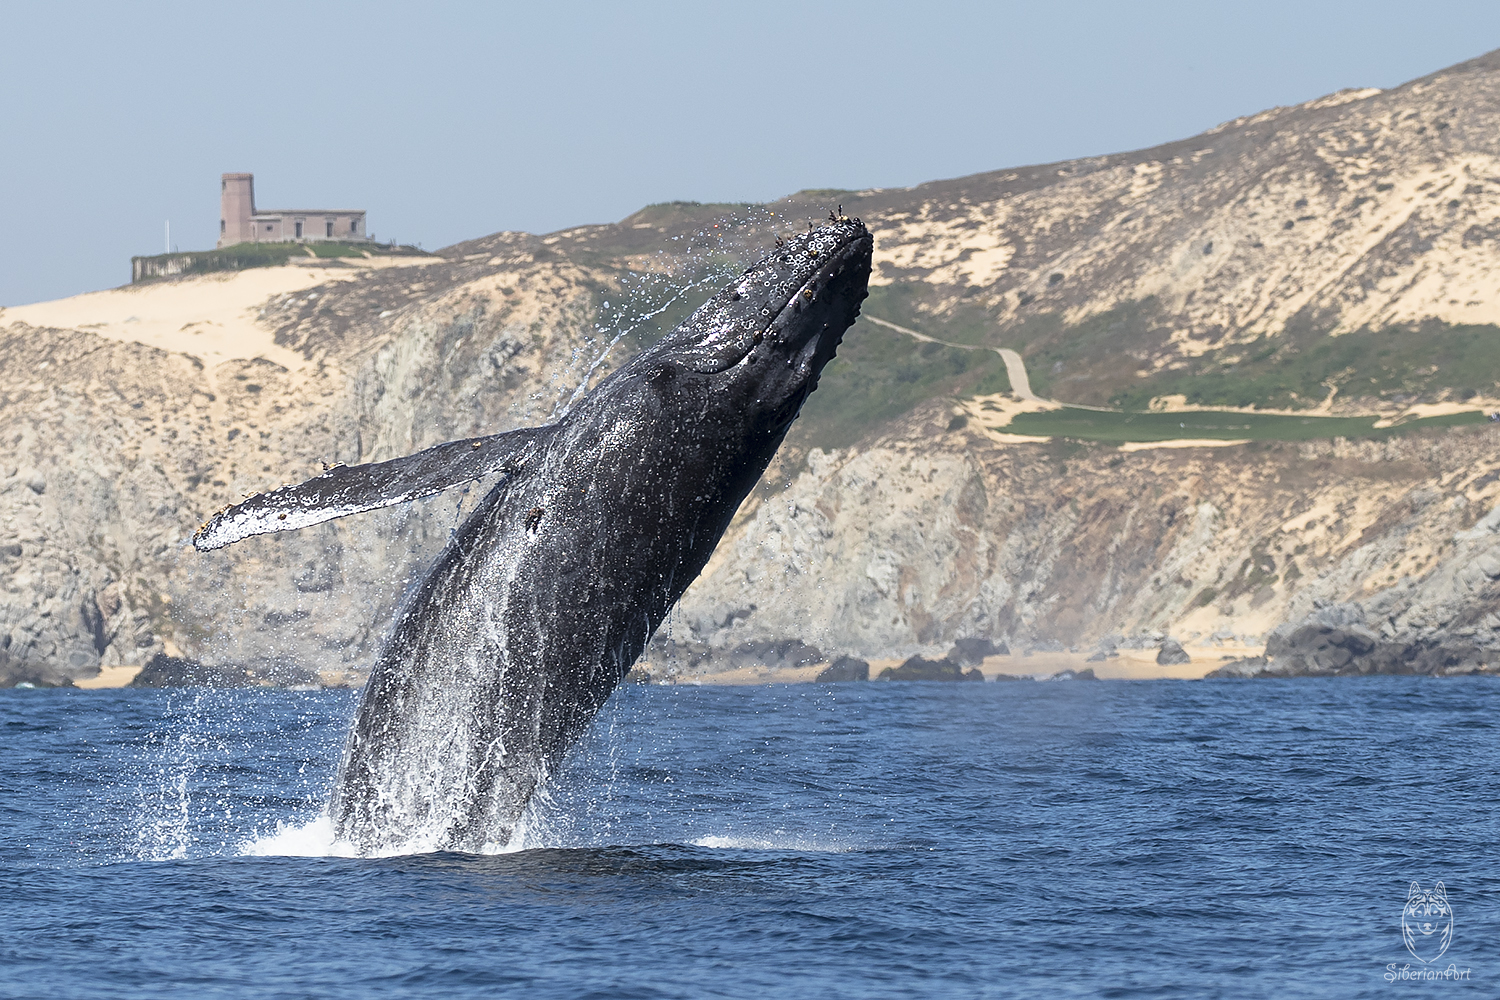 Humpback whale breaching I captured in Baja California, Mexico.